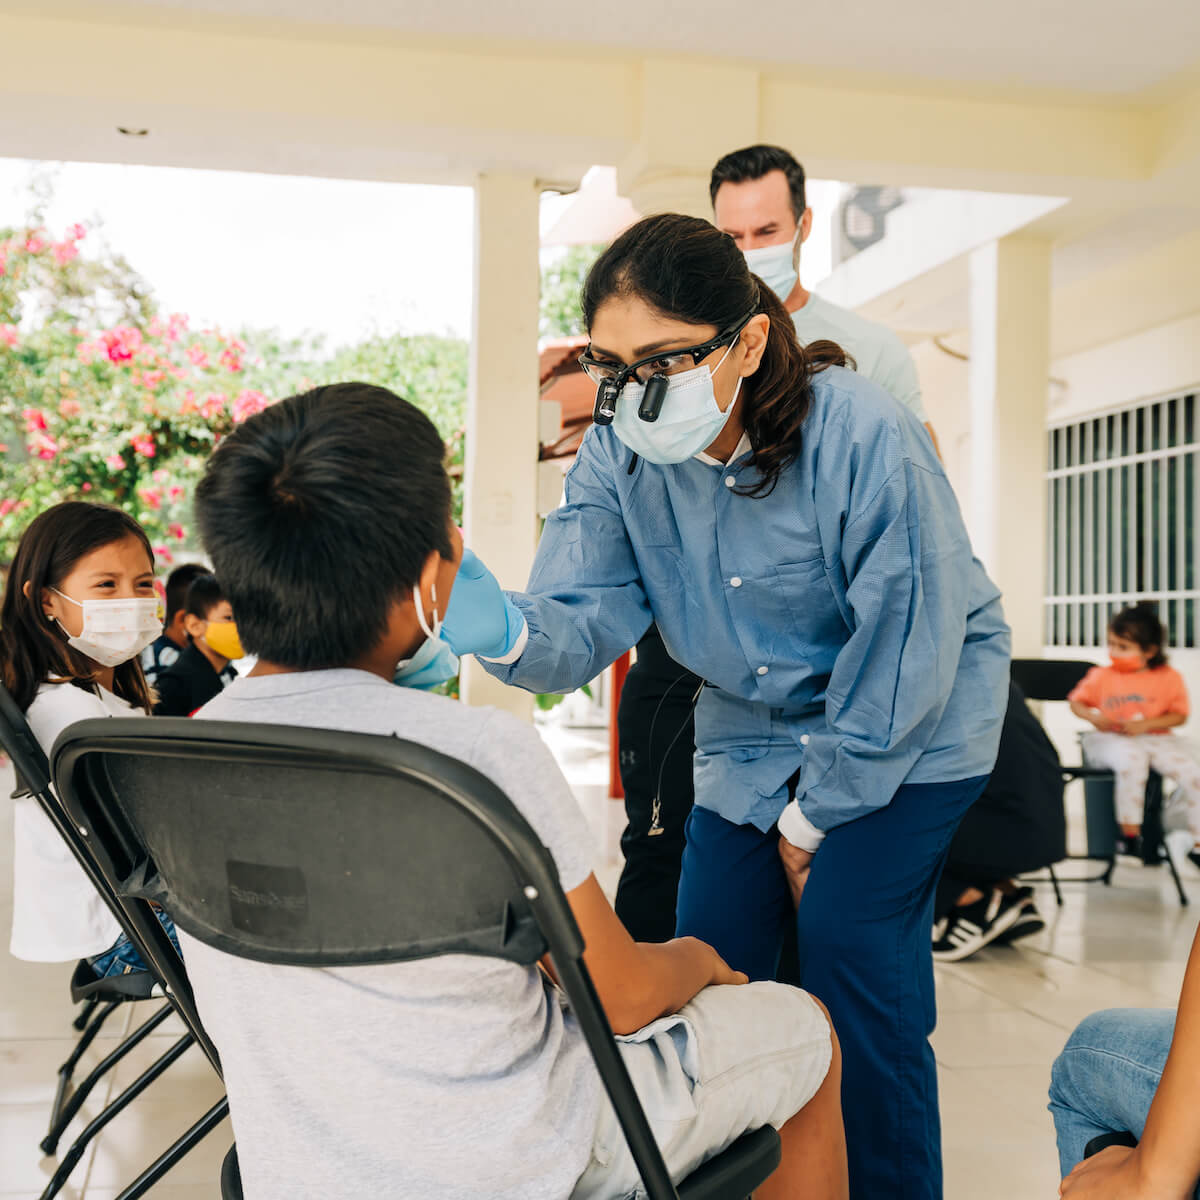 A dentist performs a checkup on a pediatric patient on a humanitarian aid trip to Mexico.